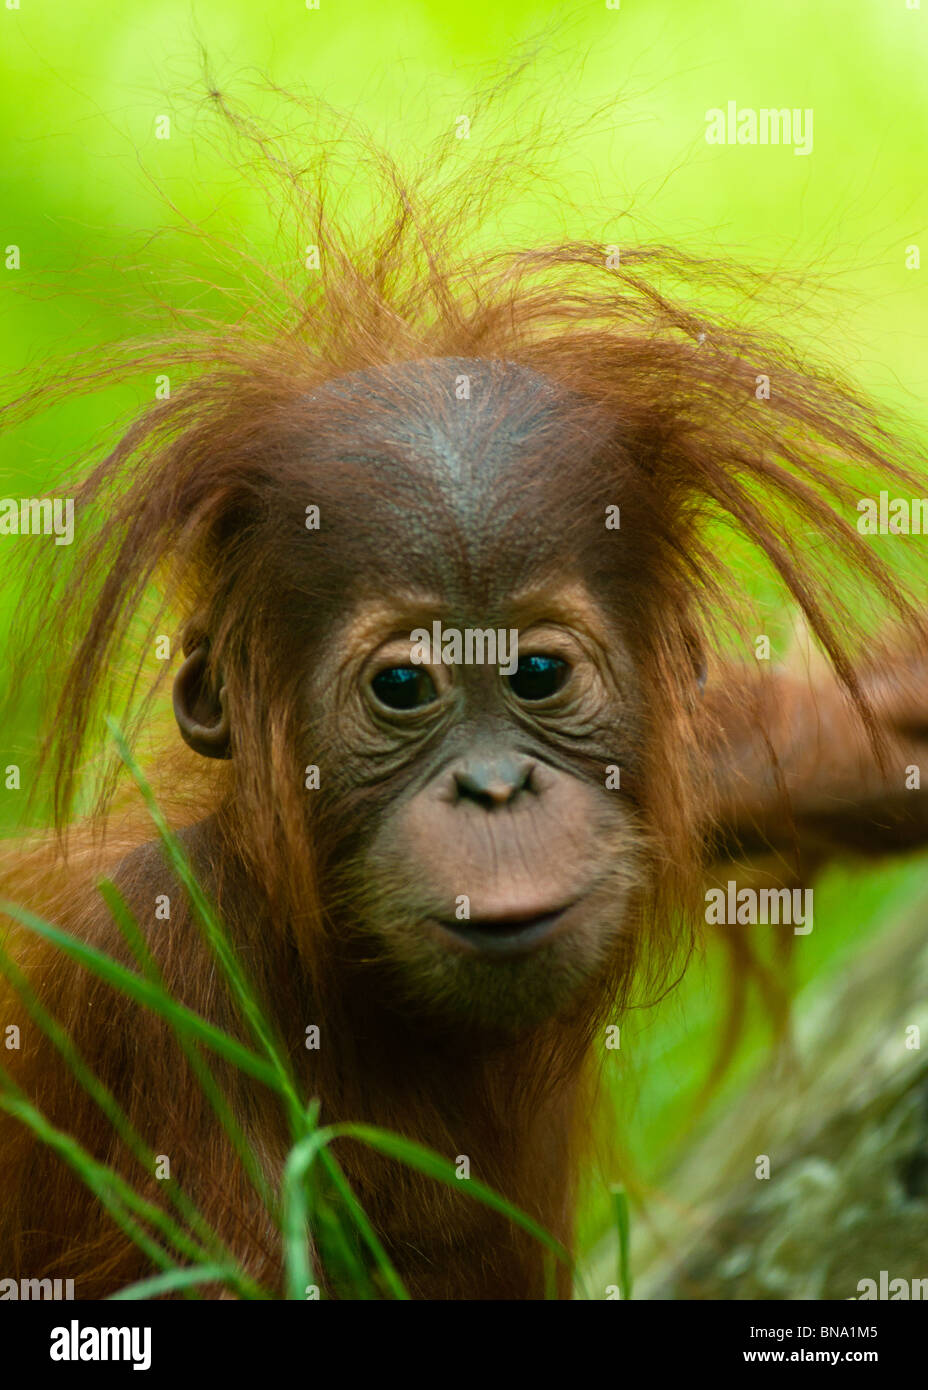 Baby Orangutan (Pongo pygmaeus) up close. - Stock Image